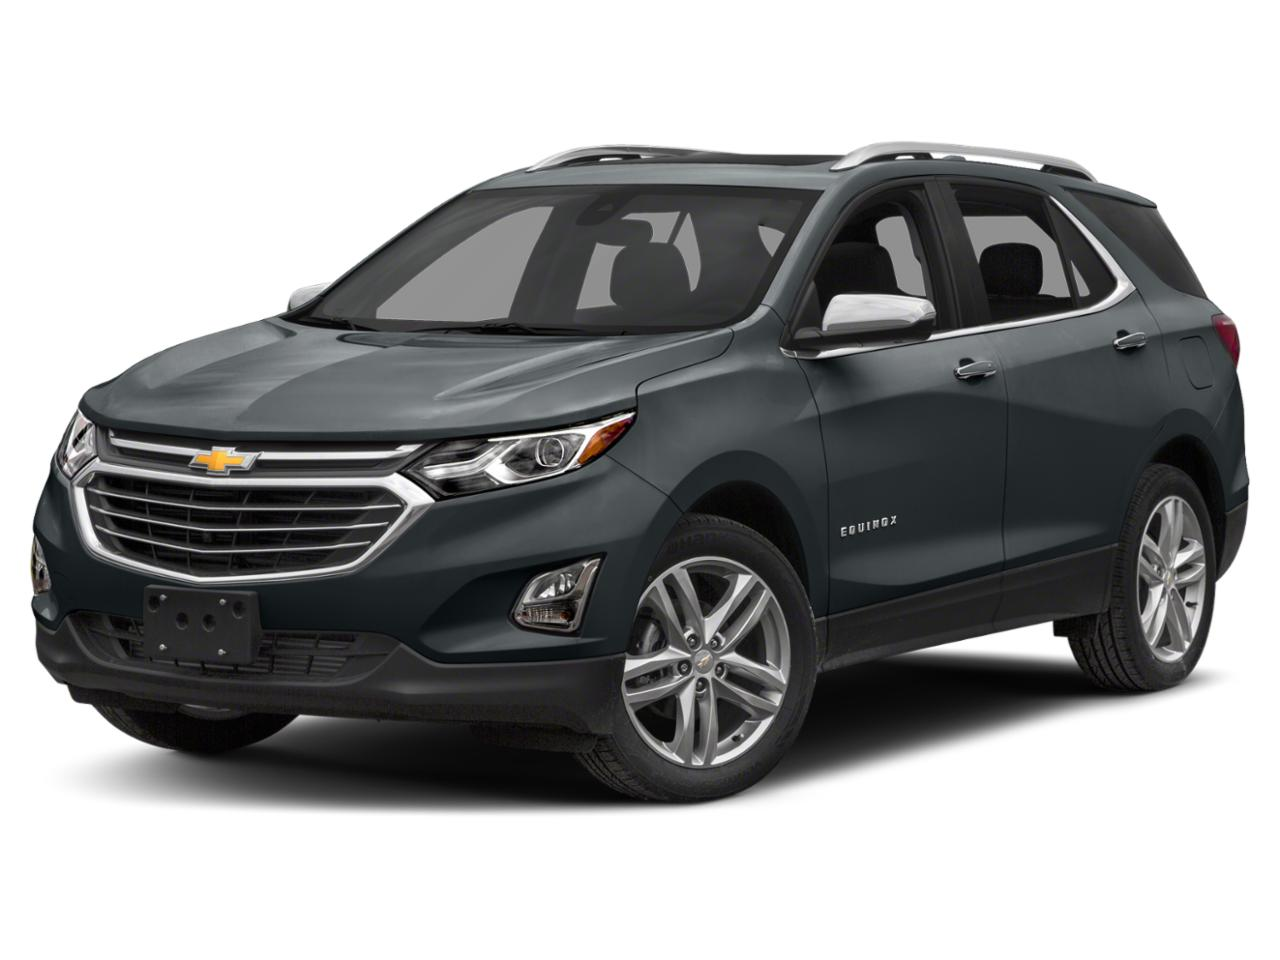 2018 Chevrolet Equinox Vehicle Photo in Tucson, AZ 85705